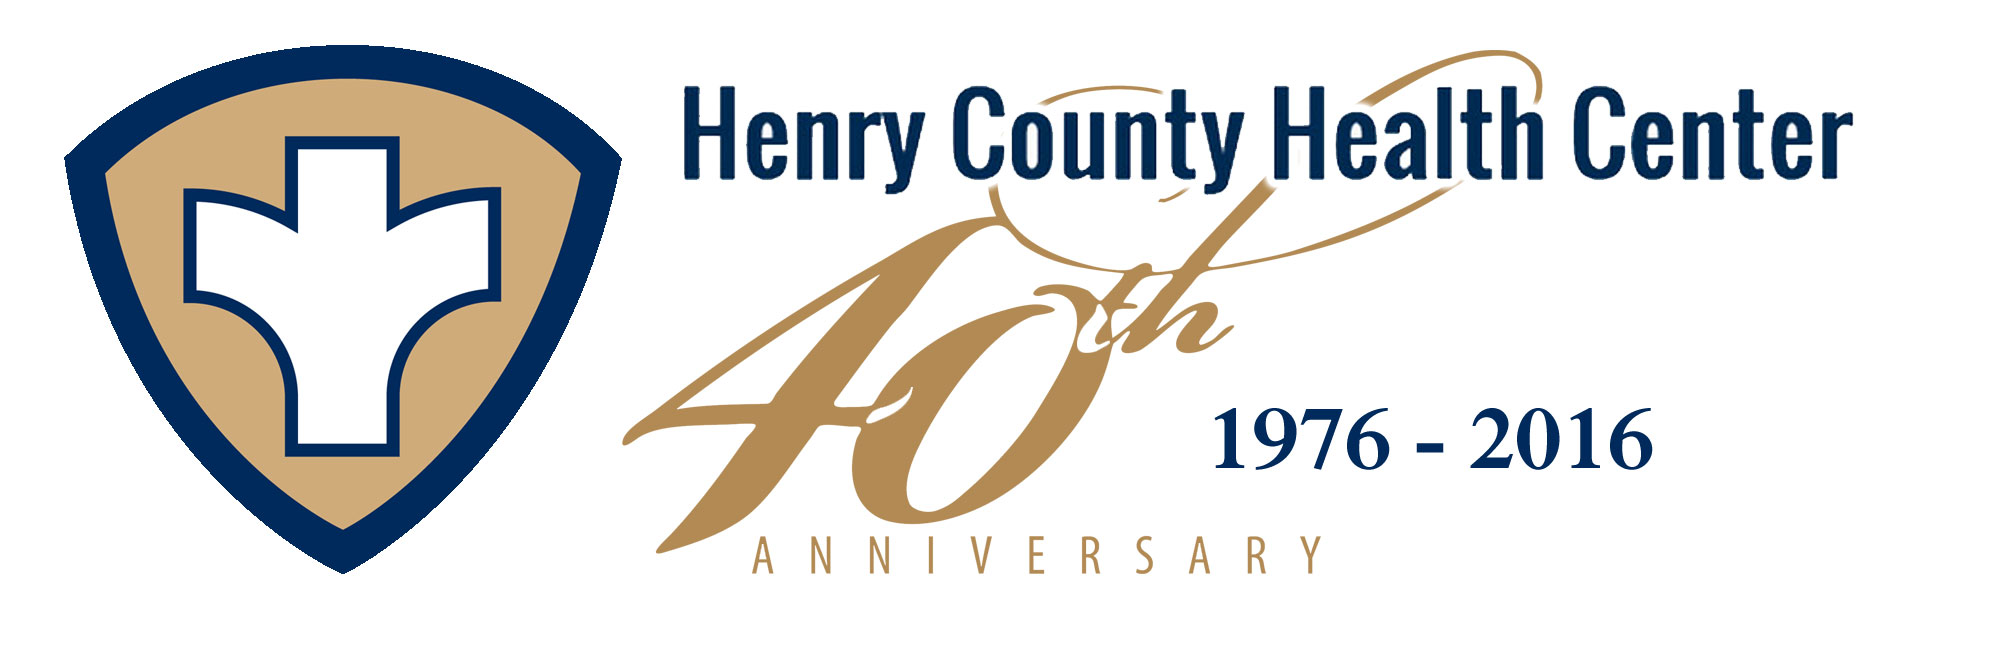 Henry County Health Center celebrates 40 years